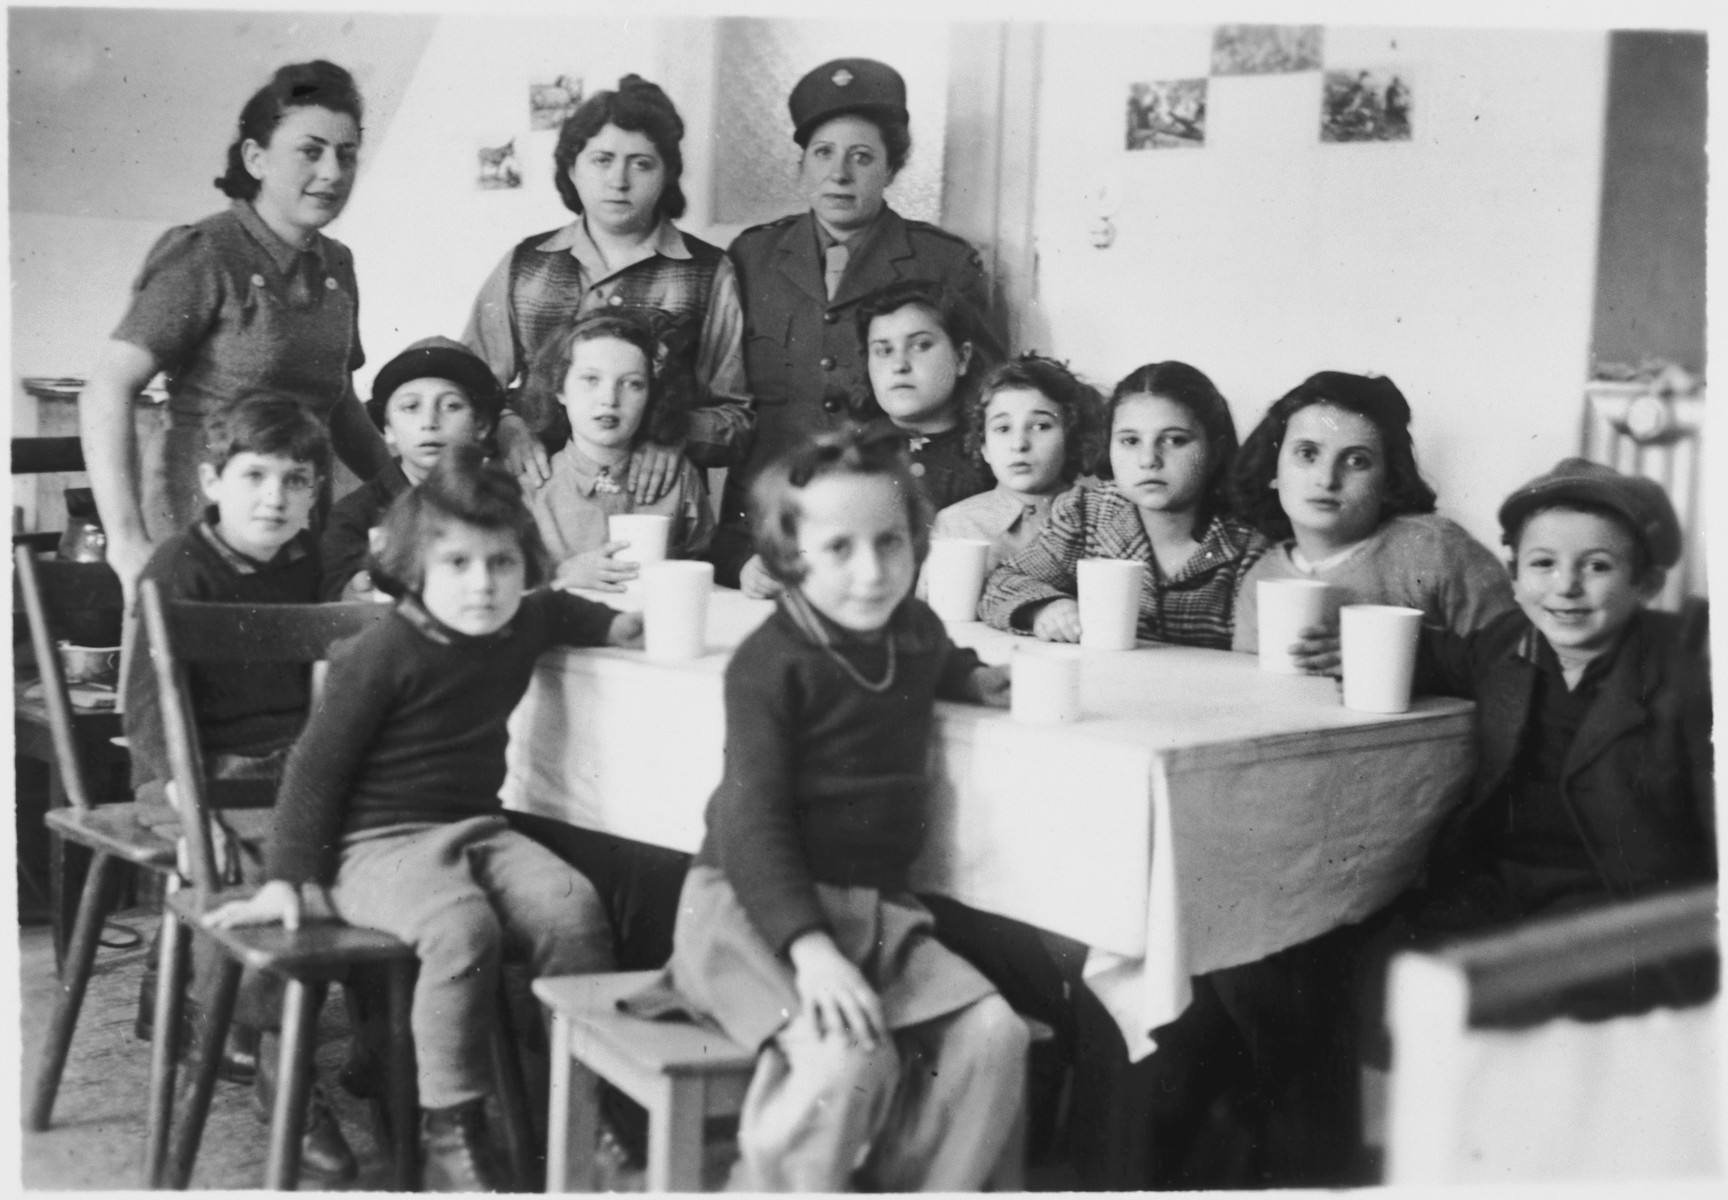 Children sit around a table set with glasses in either the Foehrenwald or the Windsheim displaced persons' camp.